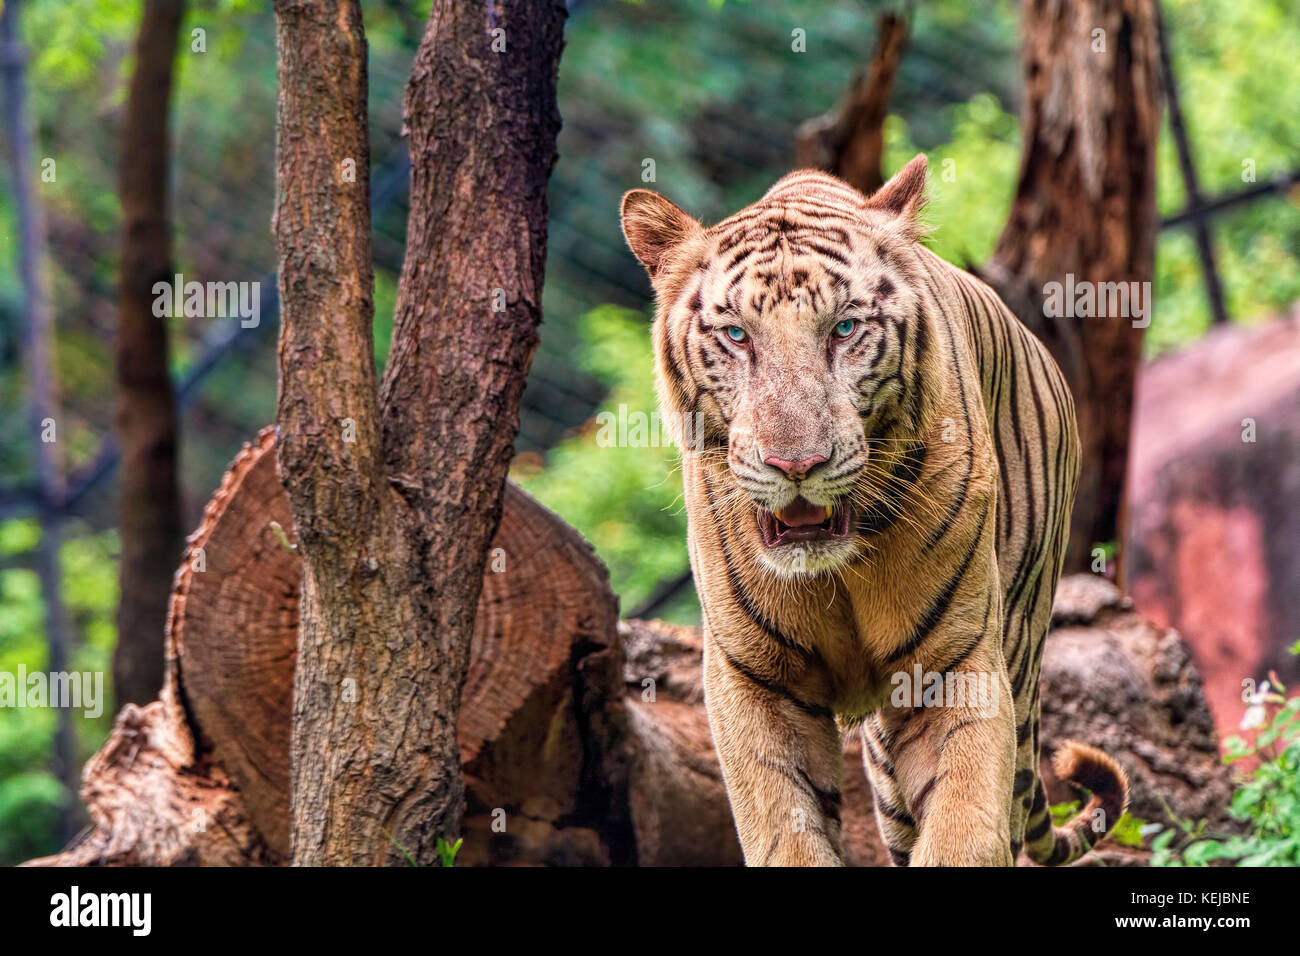 closeup of a roaring white tiger looking away with a green flora out